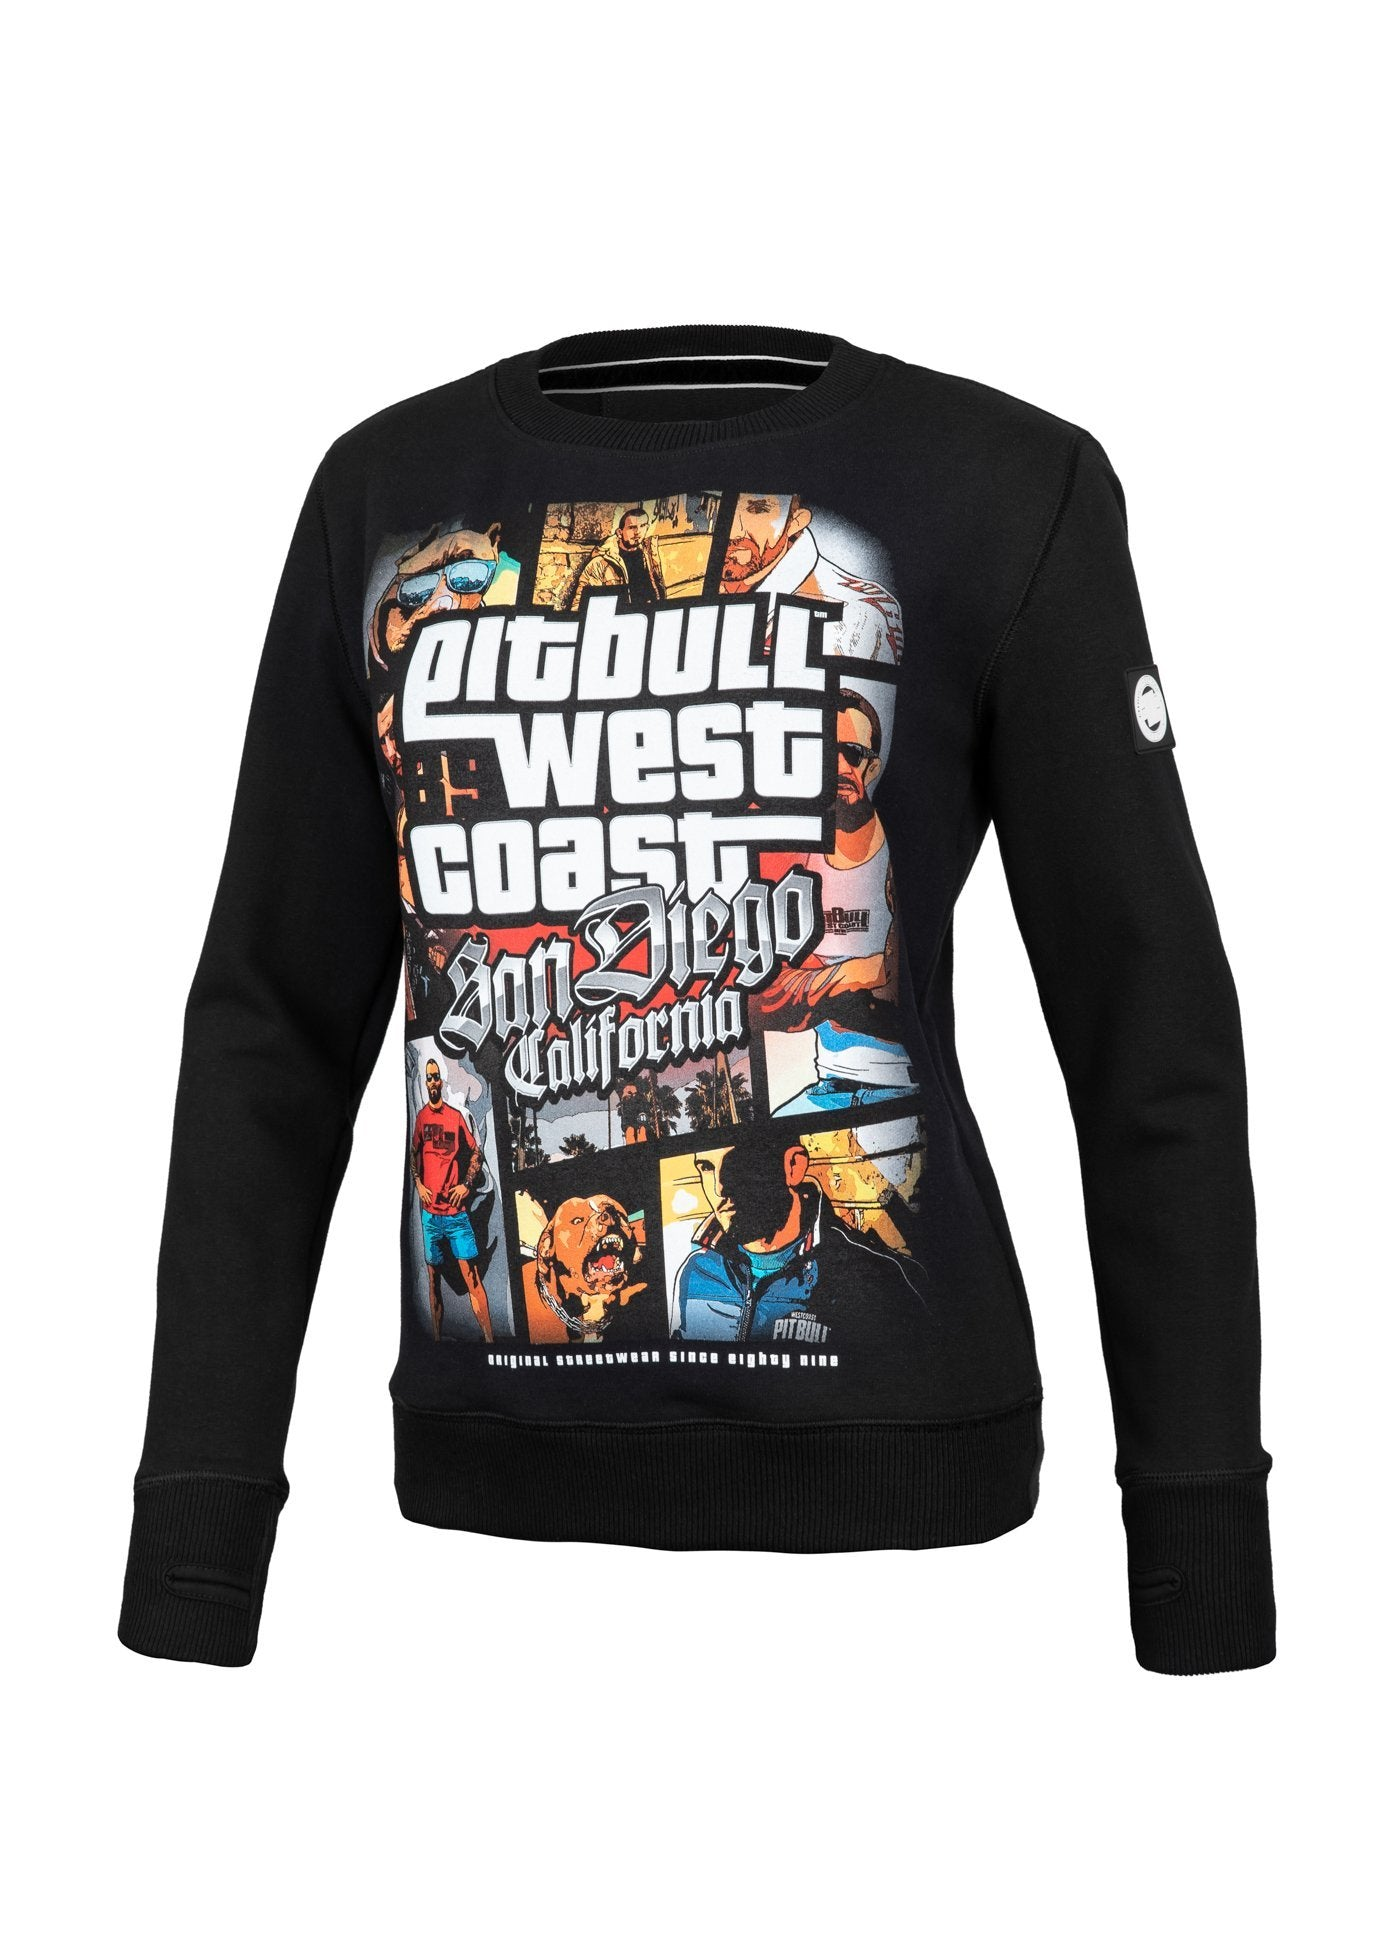 WOMEN CREWNECK Most Wanted BLACK - Pitbull West Coast U.S.A.